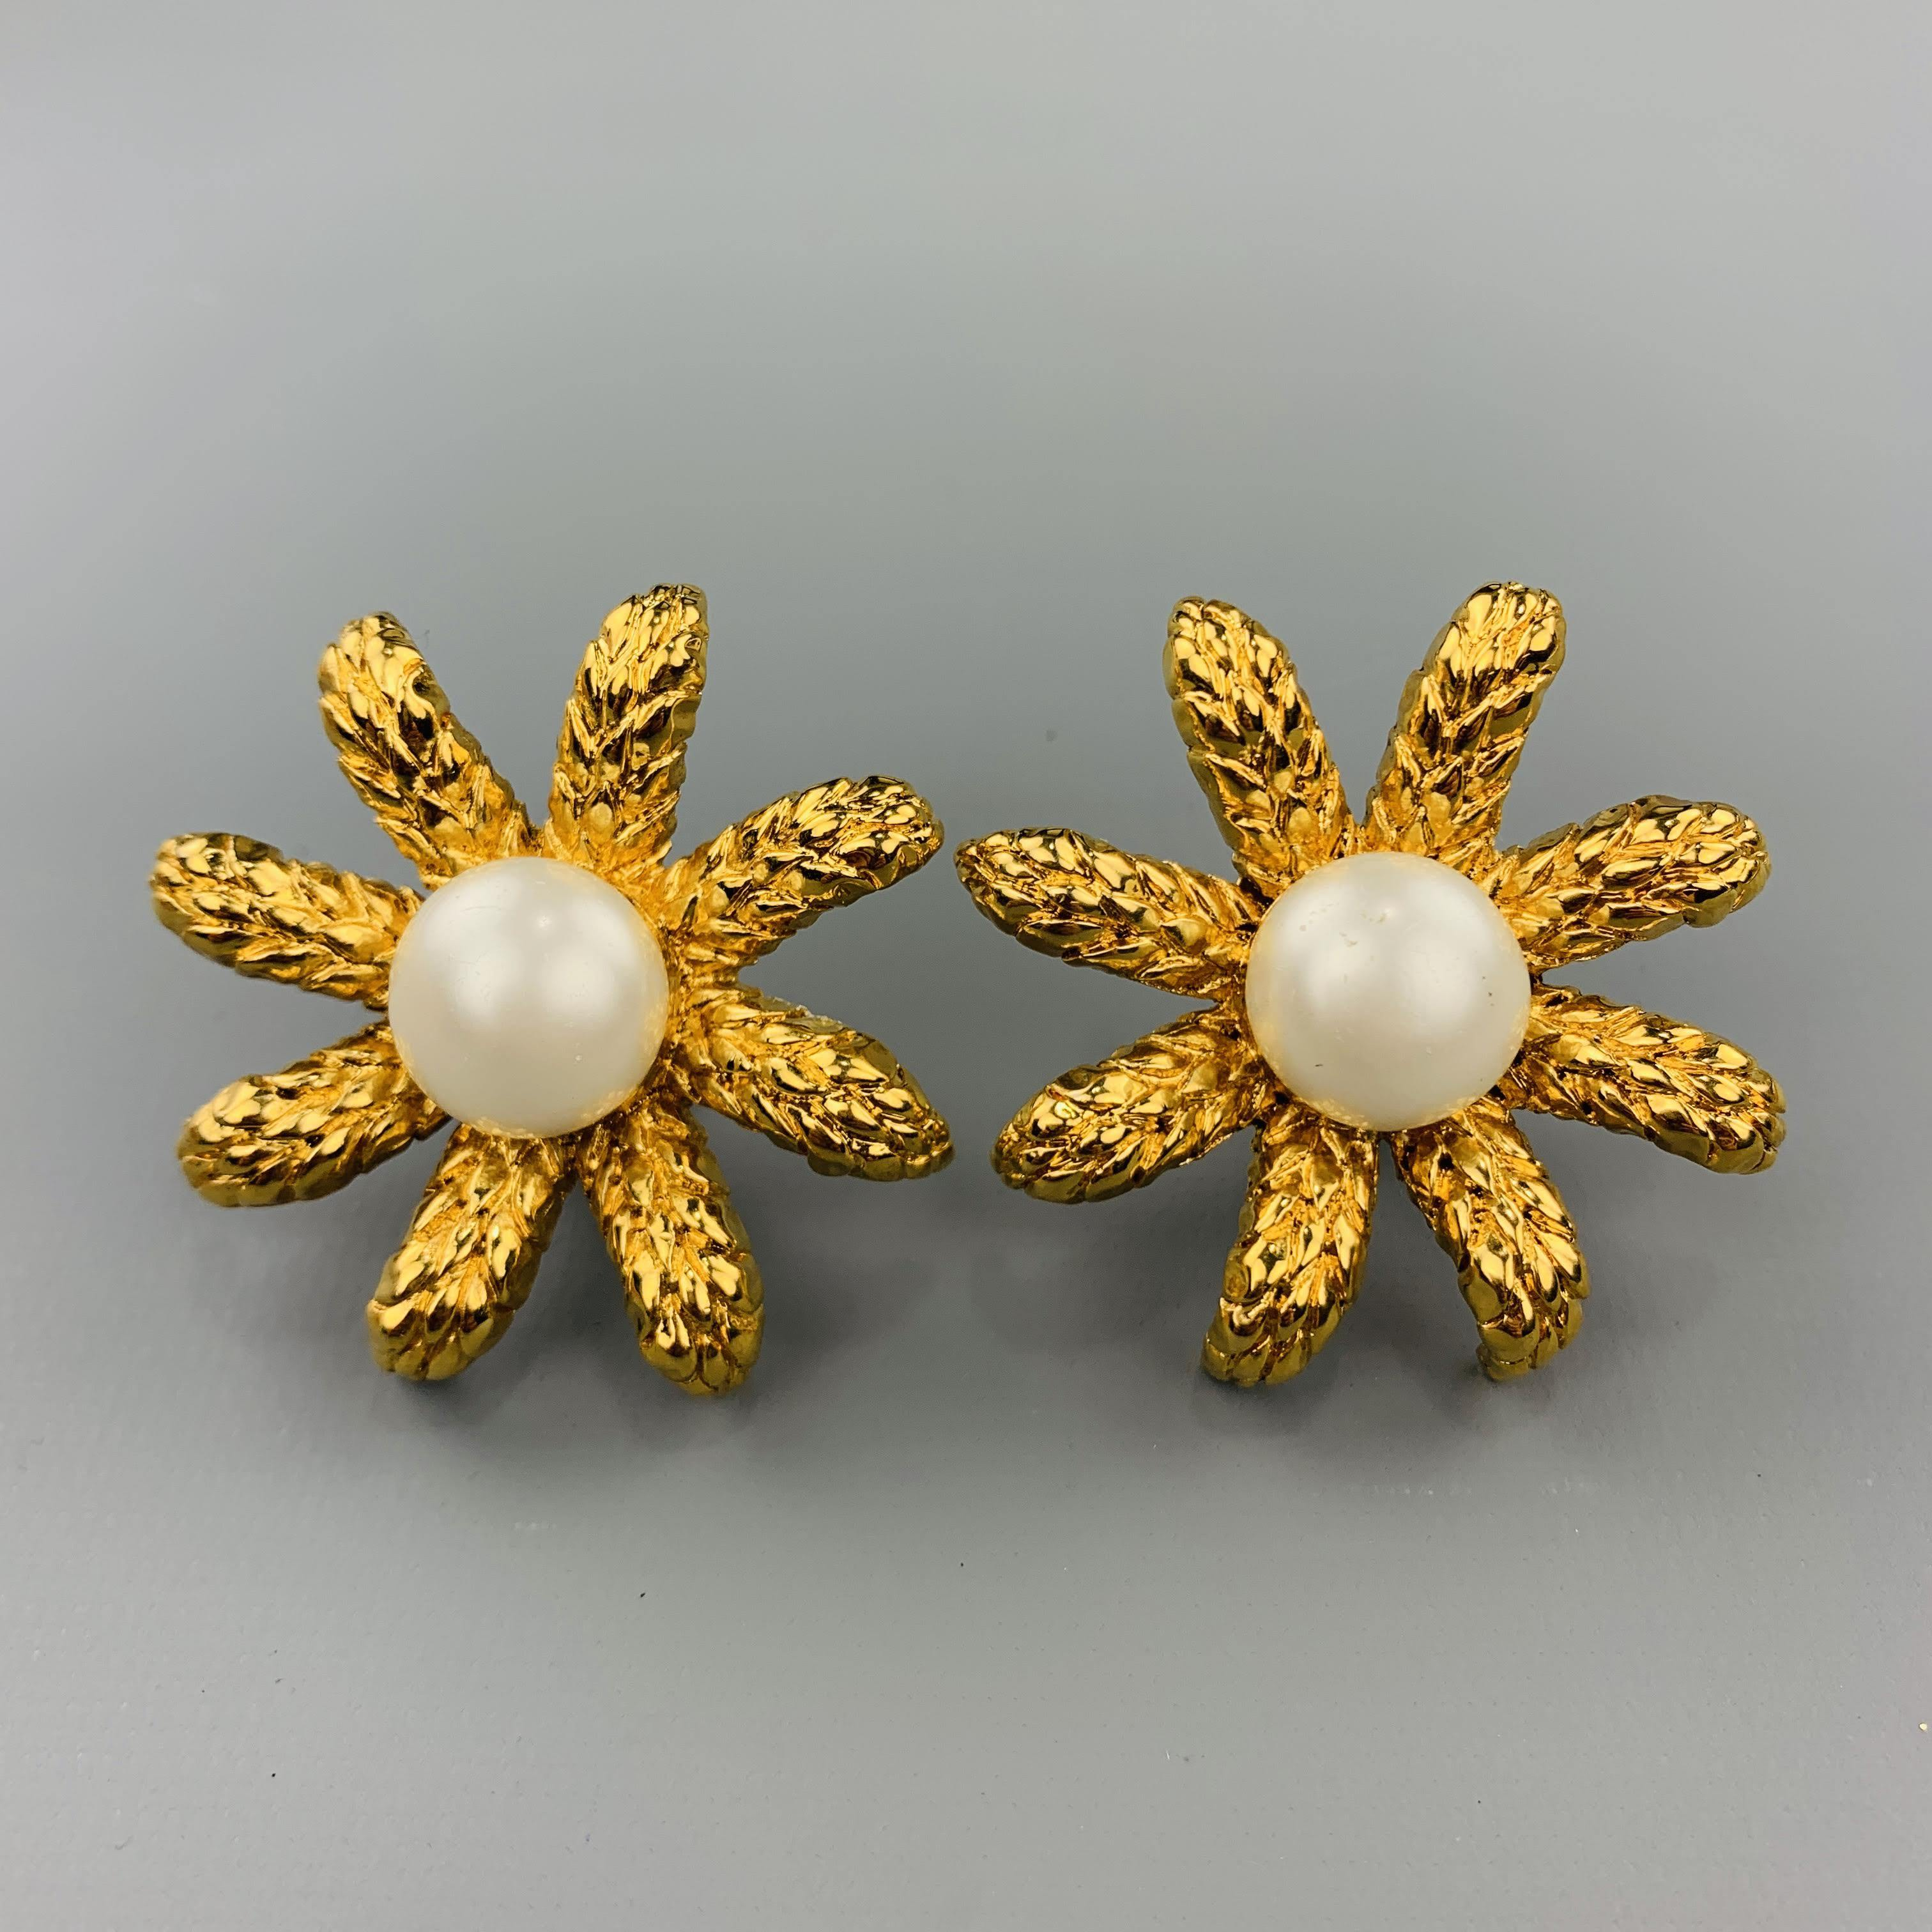 Gold Tone Metal  Clip on Earrings with Clear Coated Quartz and  Faux Pearls